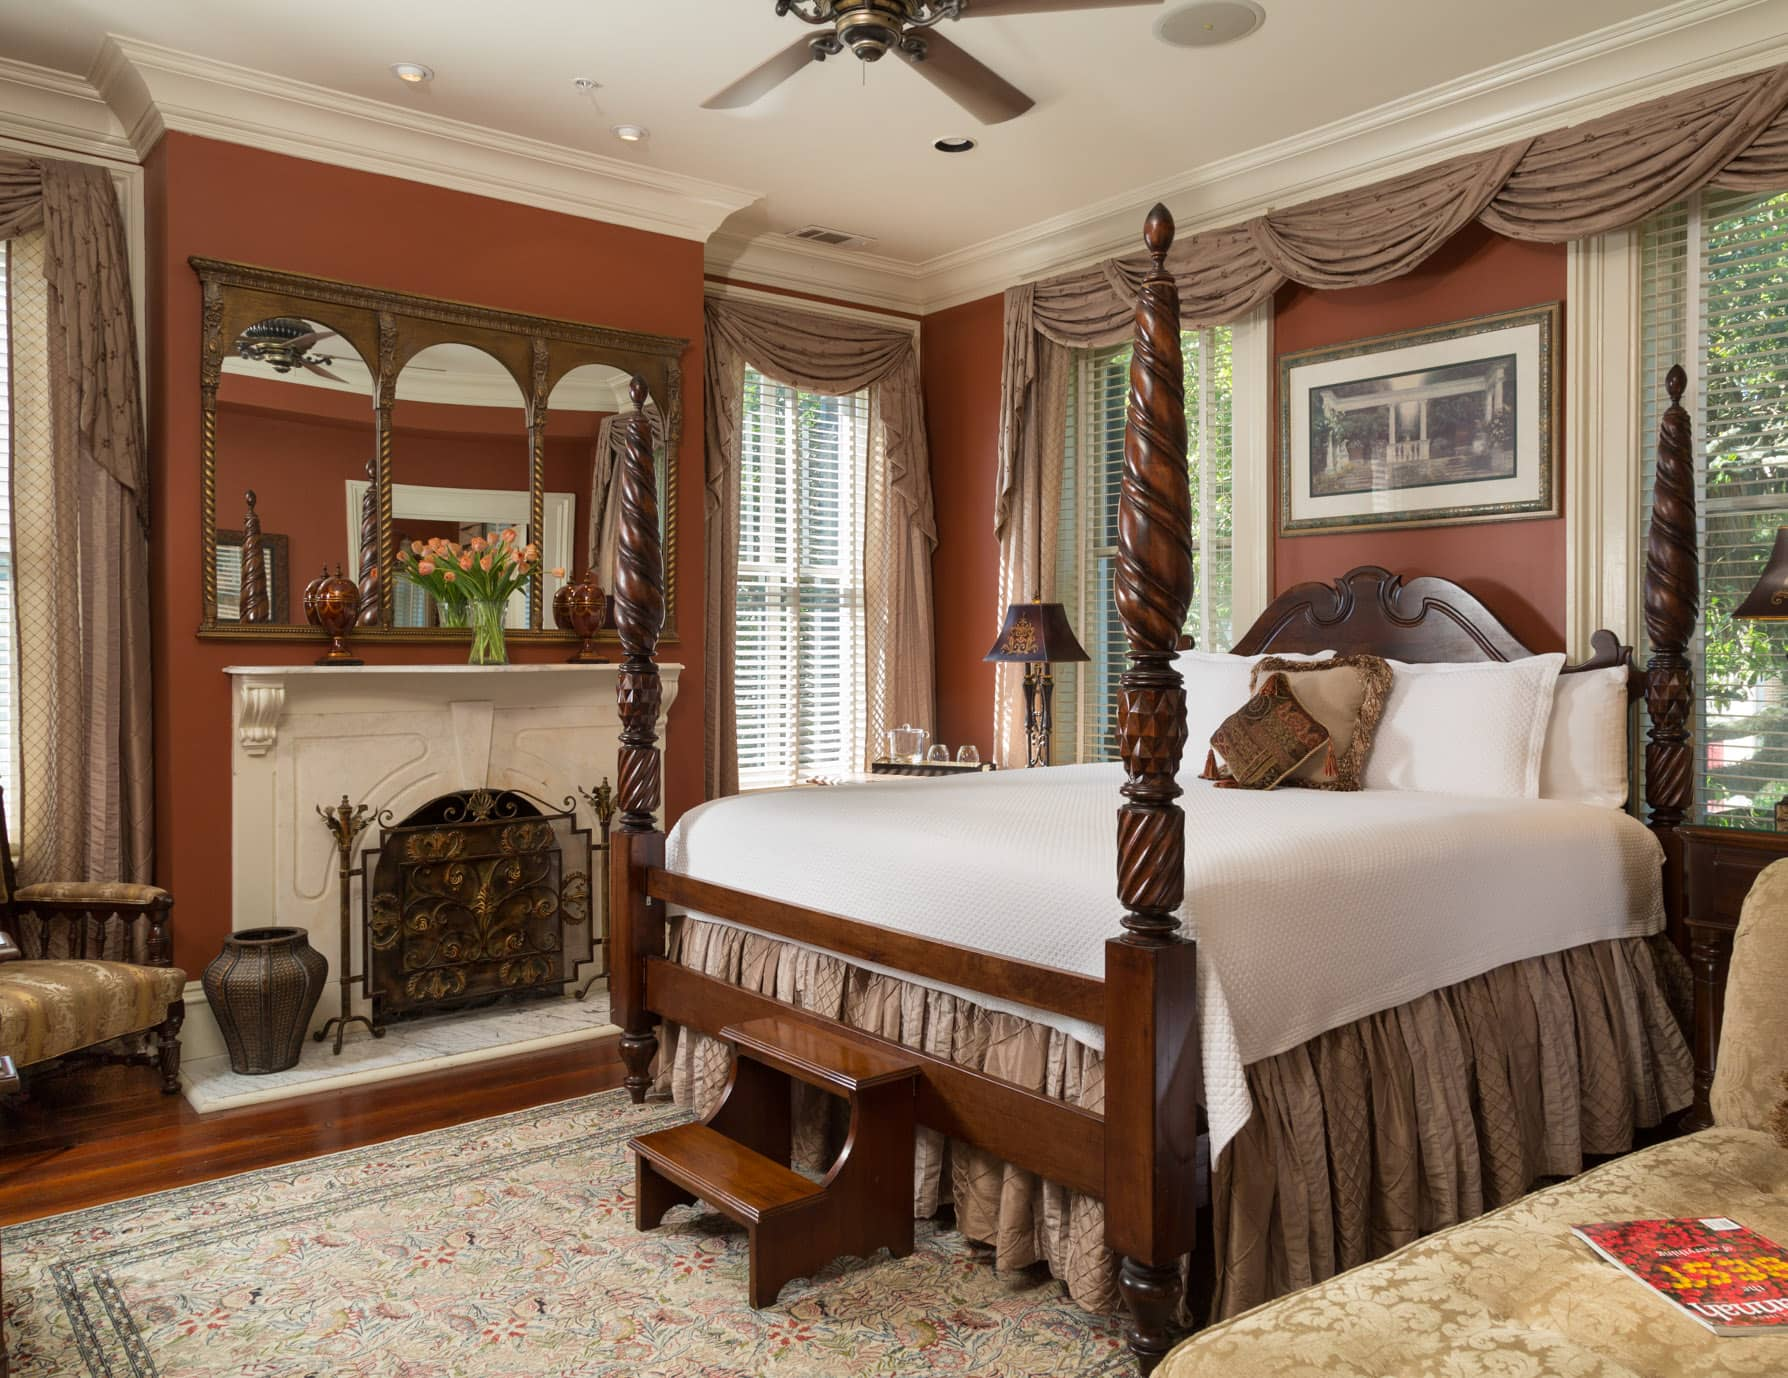 A large room with ornate furnishings a king bed, and fireplace with 4 large windows